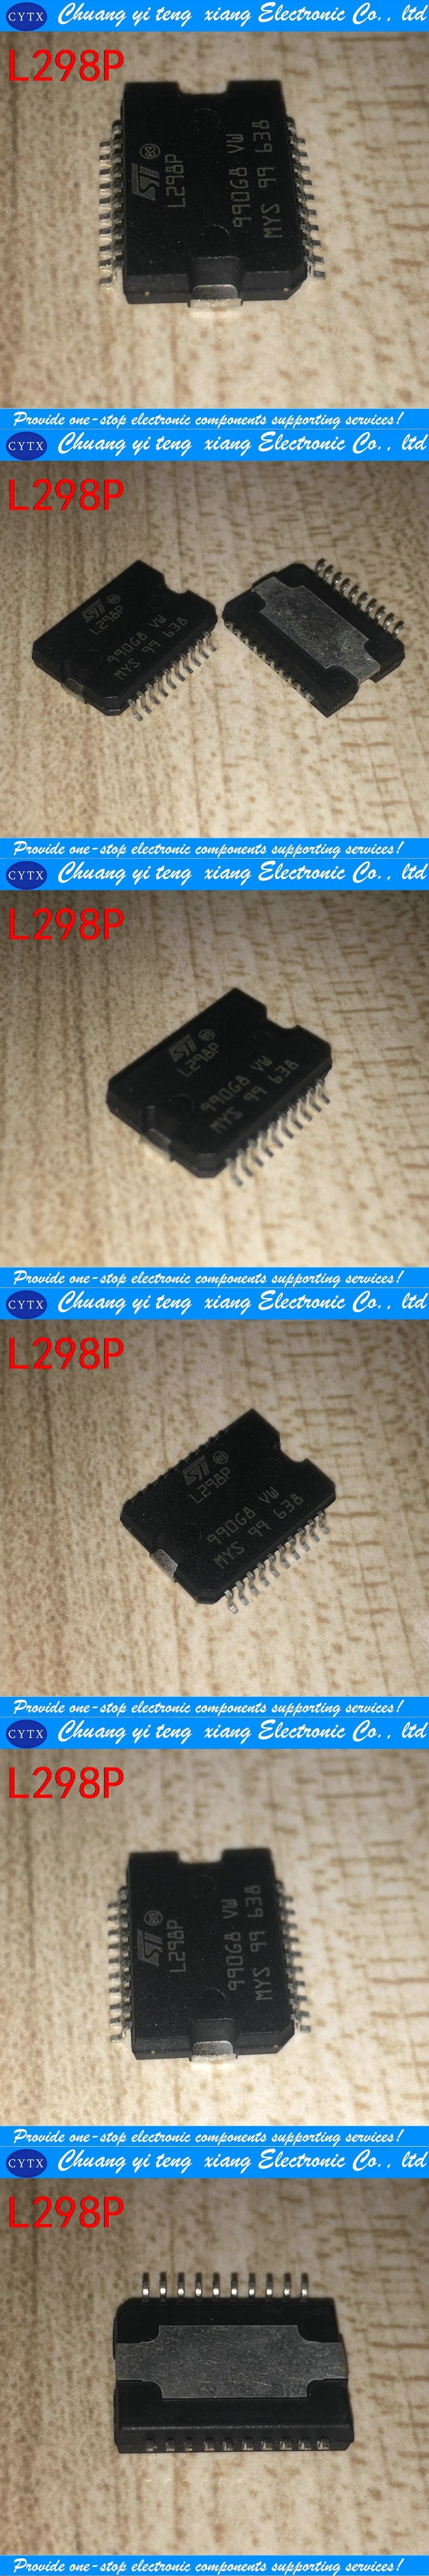 Integrated Circuits Ic Components And More L298p Sop L298 Shield Of Motor Circuit Smd 5pcs Lot